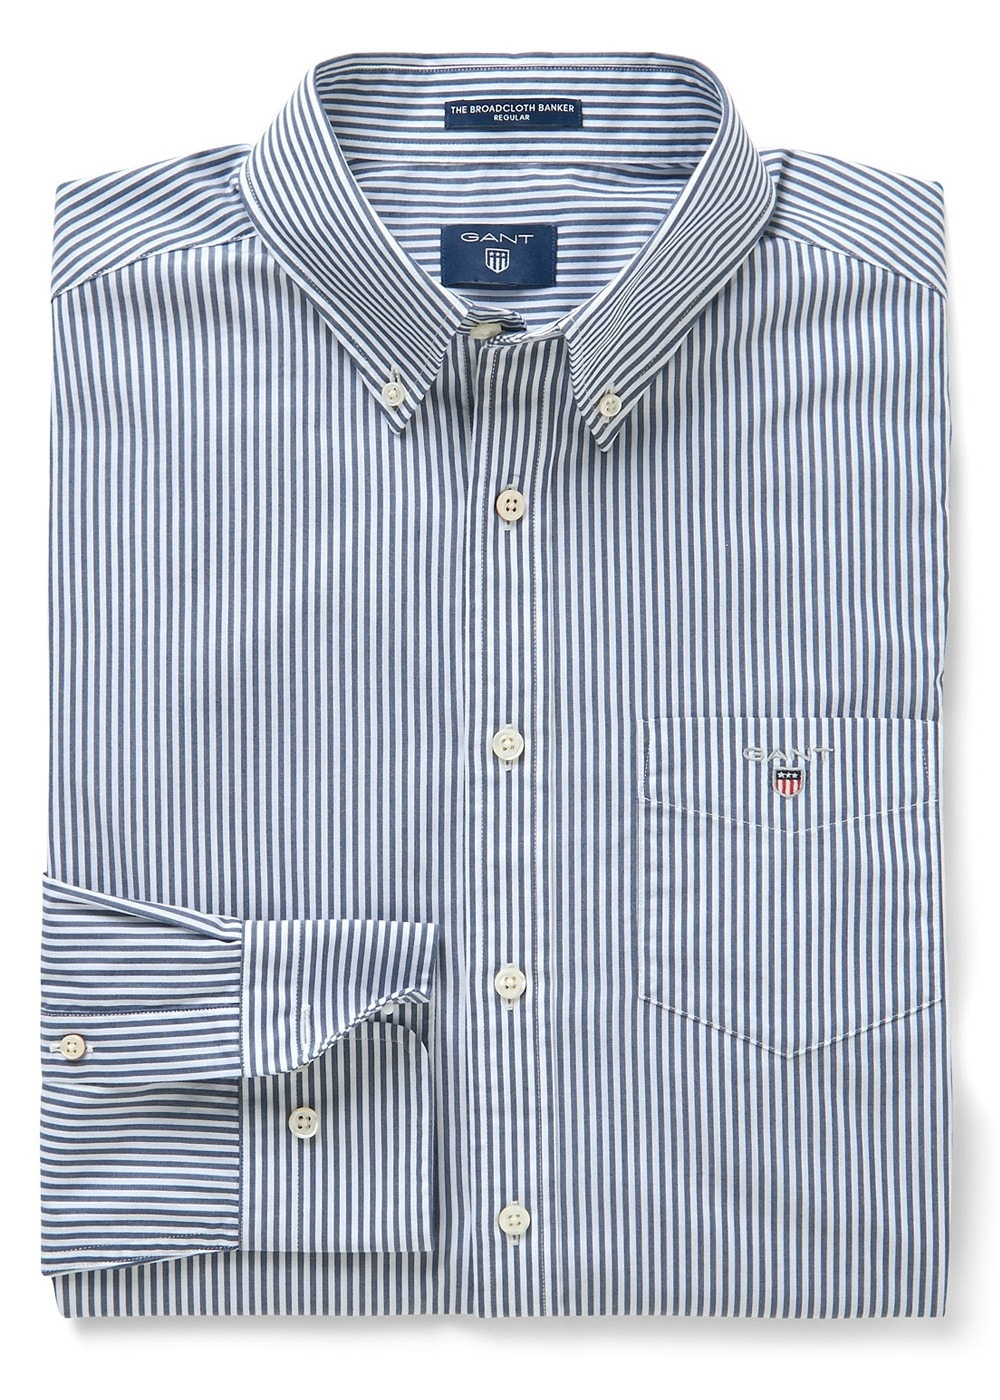 2d6e3afd37 Gant Broadcloth Banker Striped Shirt - Mens from A Hume UK